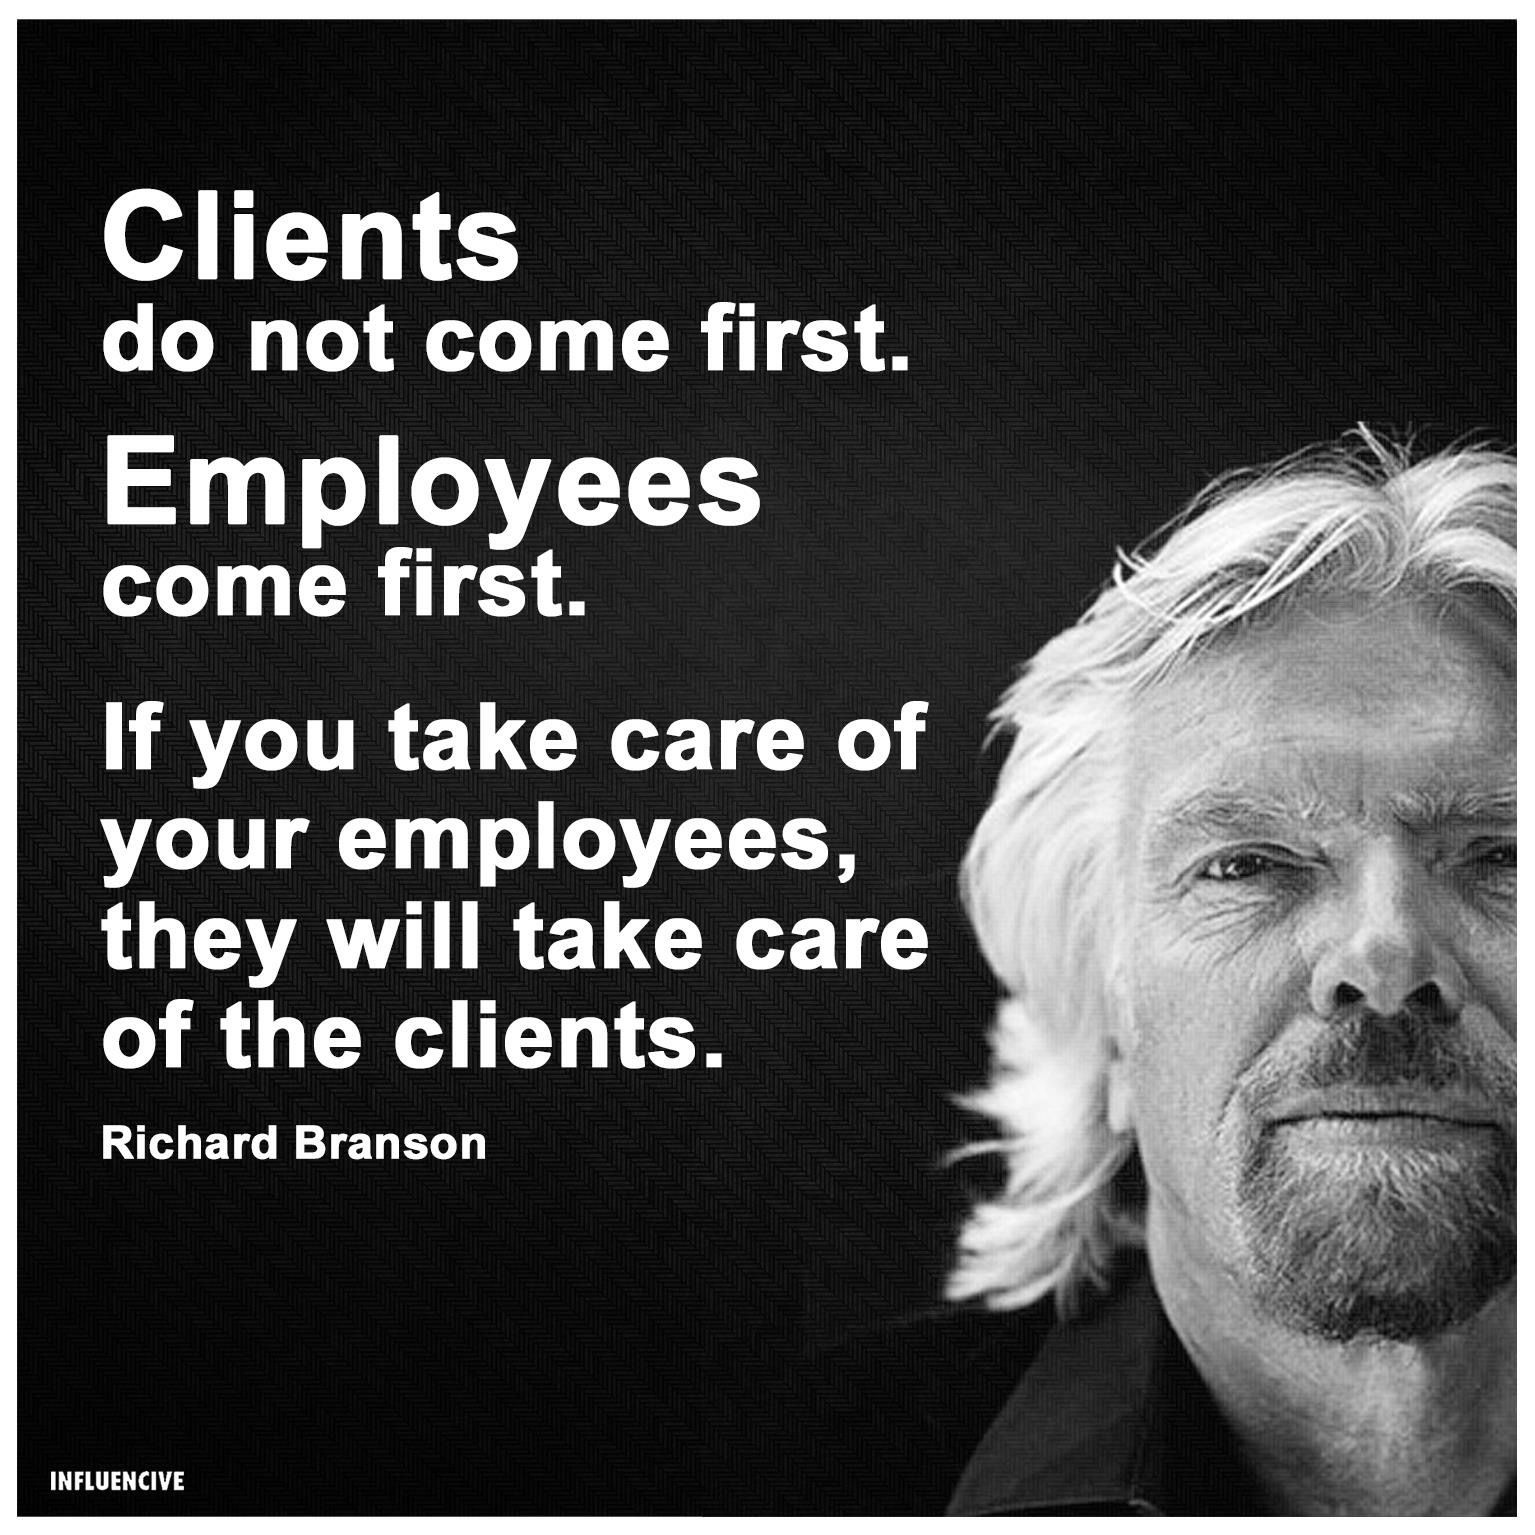 Richard Branson in a black-and-white picture with one of his most popular quotes about why employees, not customers, come first